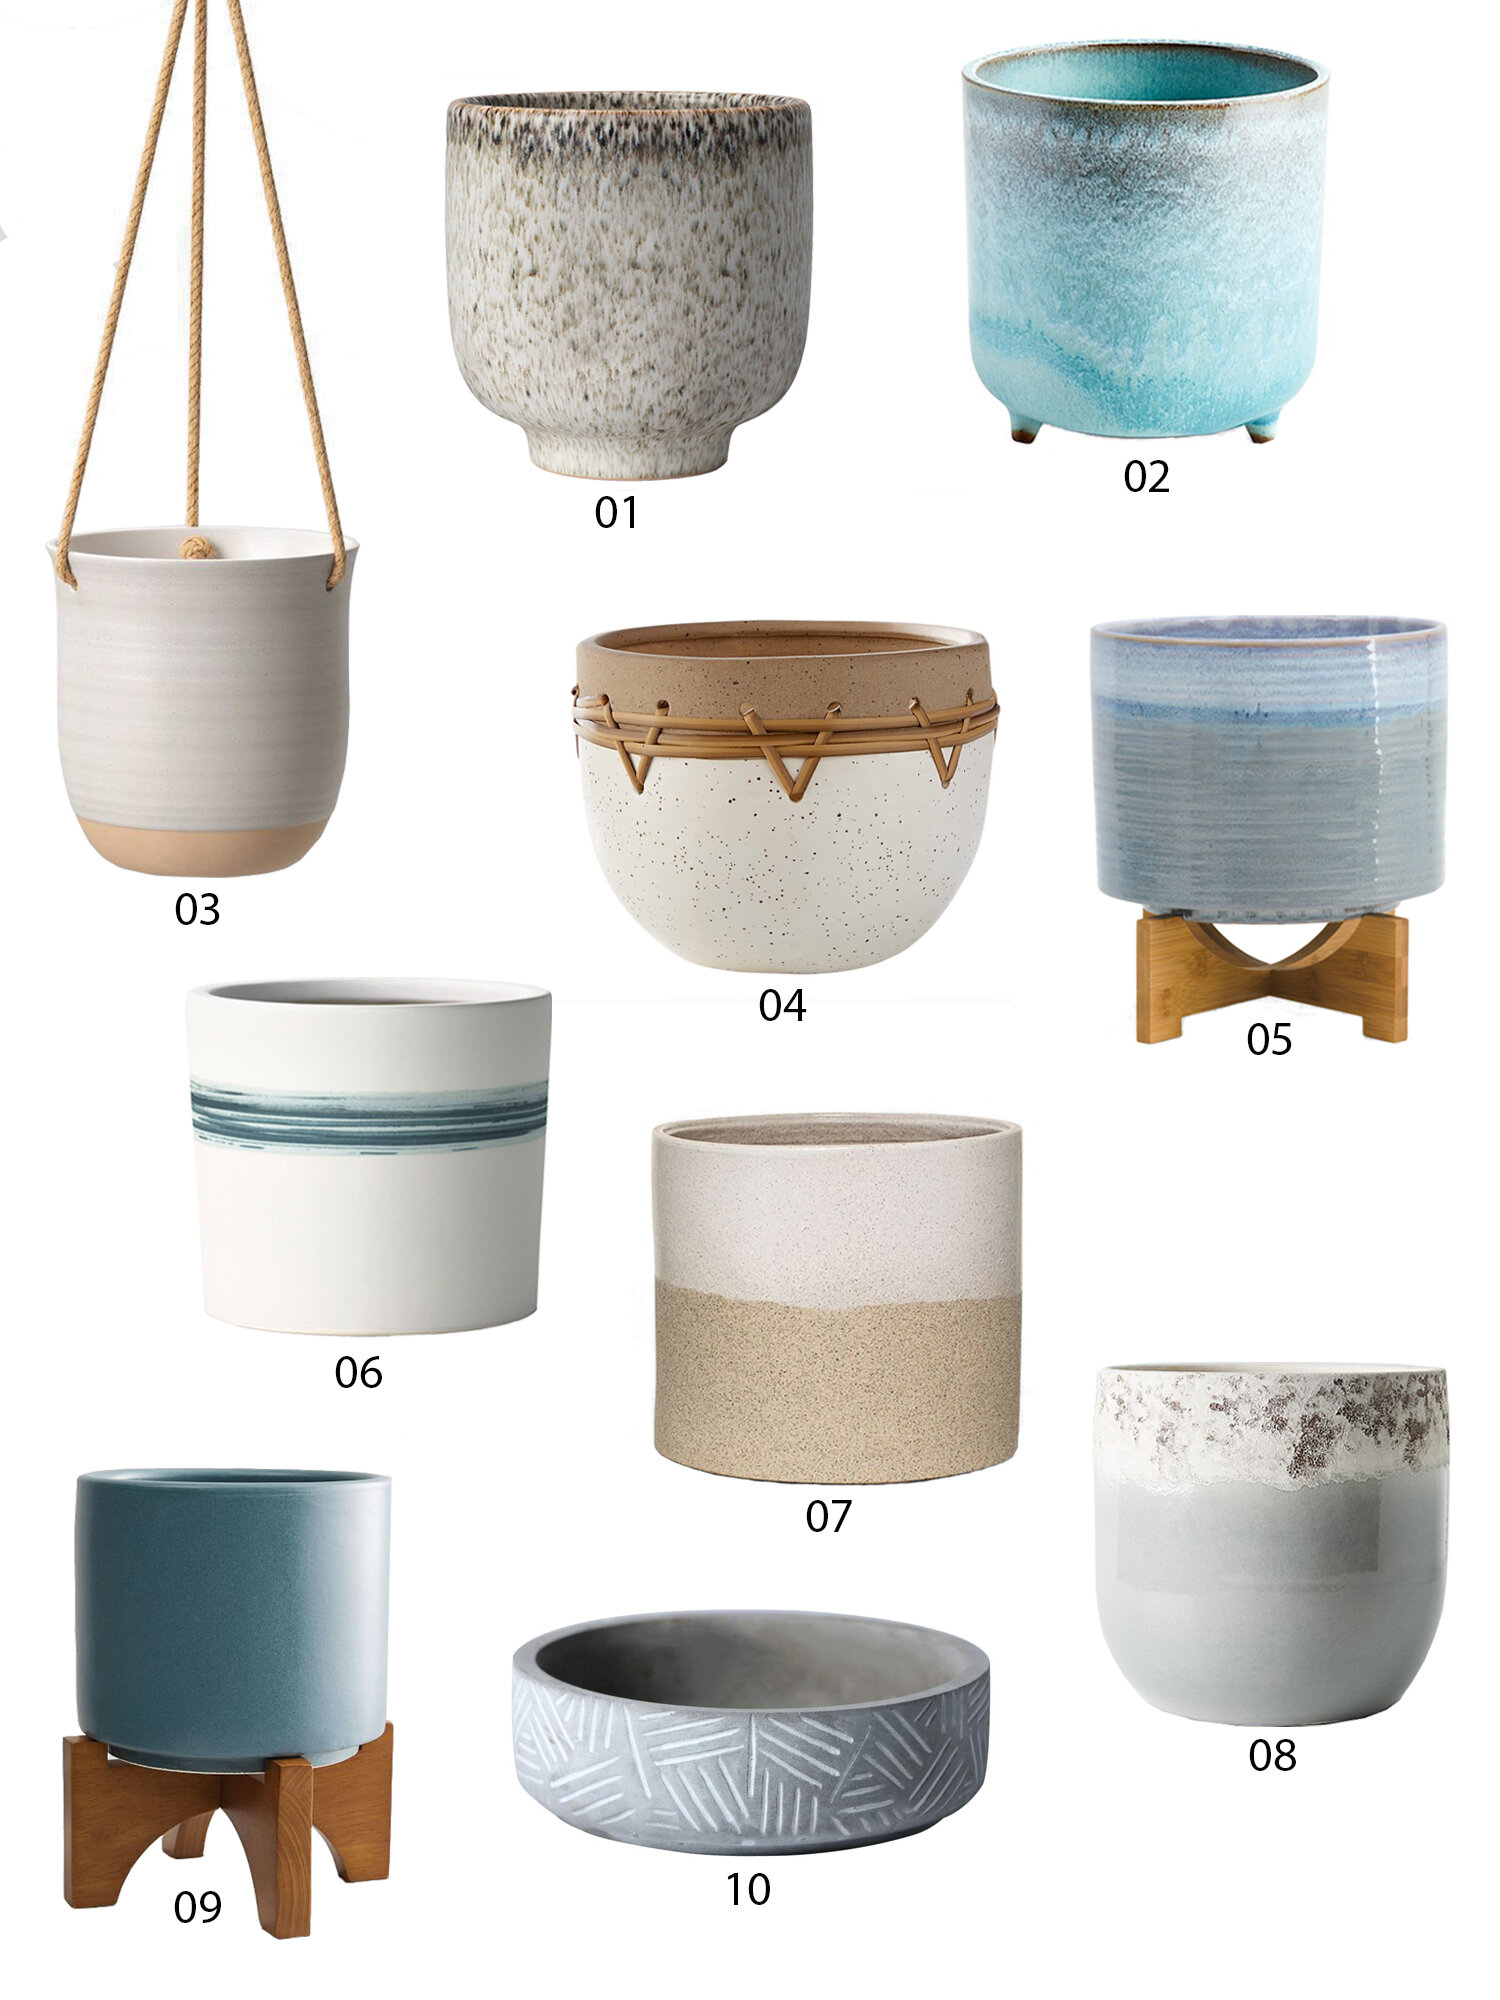 50 Affordable Planters Under $50